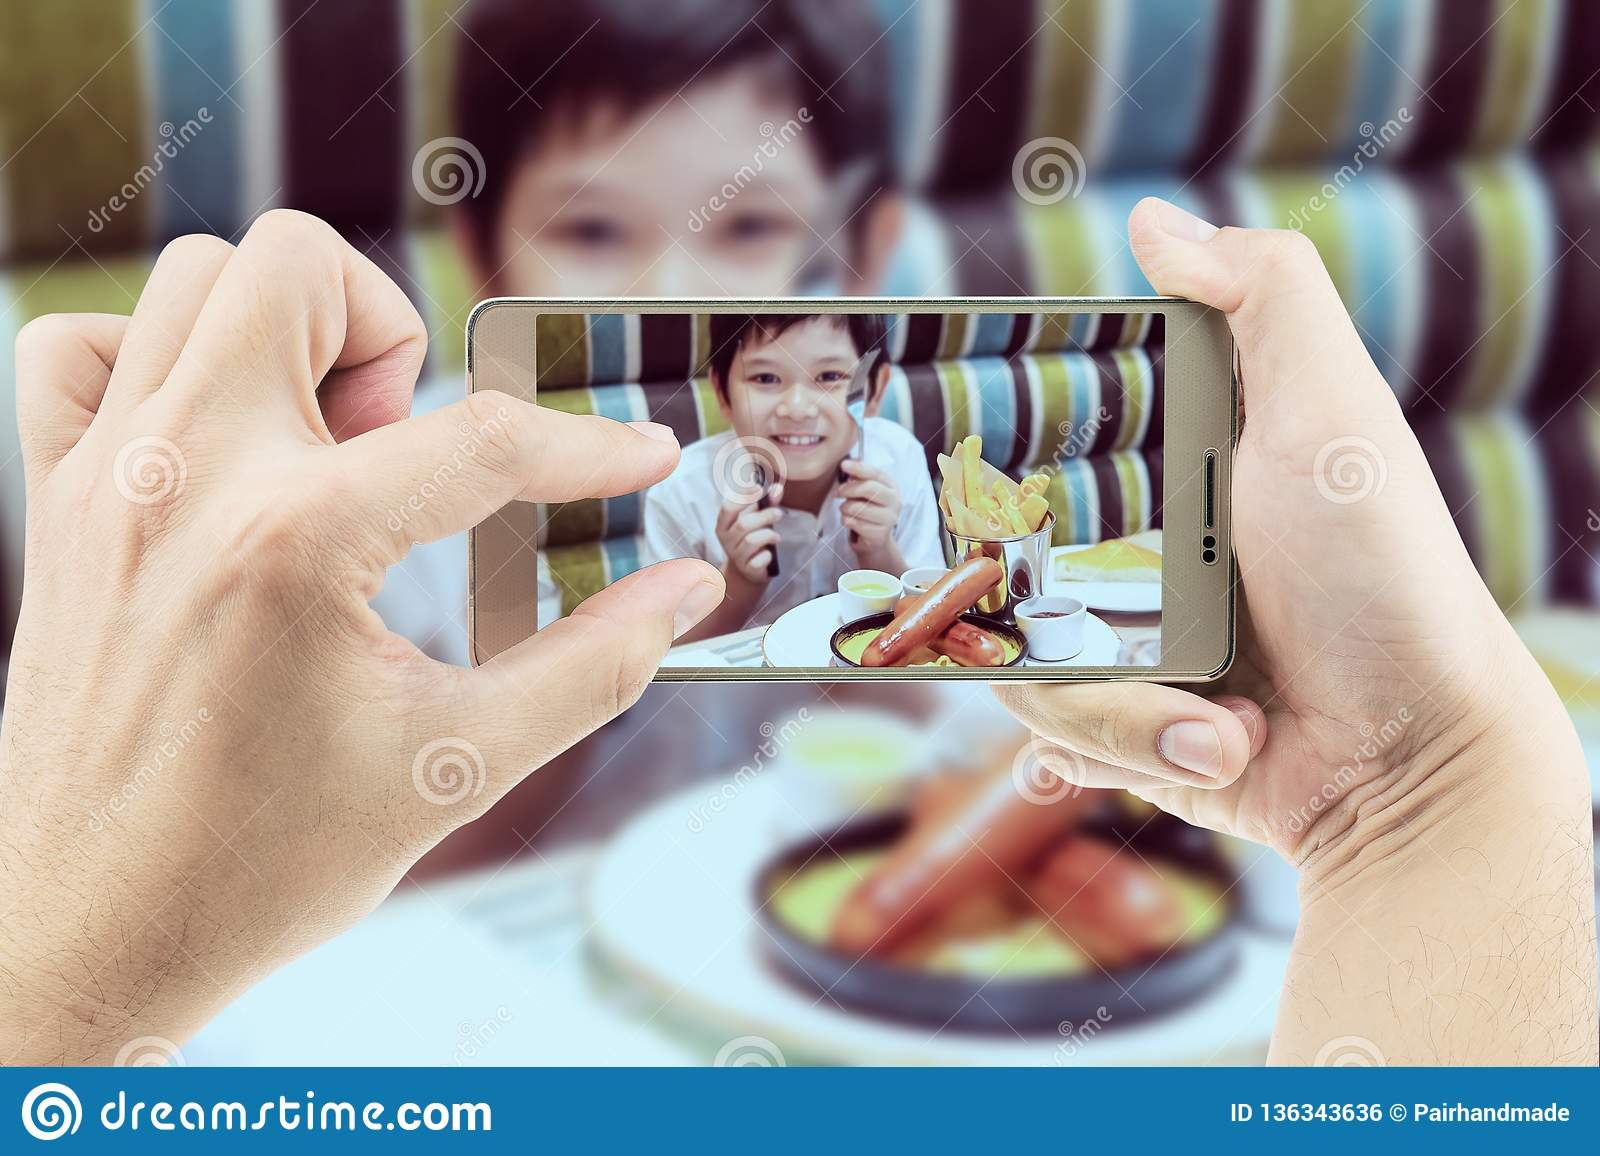 Dad take mobile photo of Asian boy eating French fries